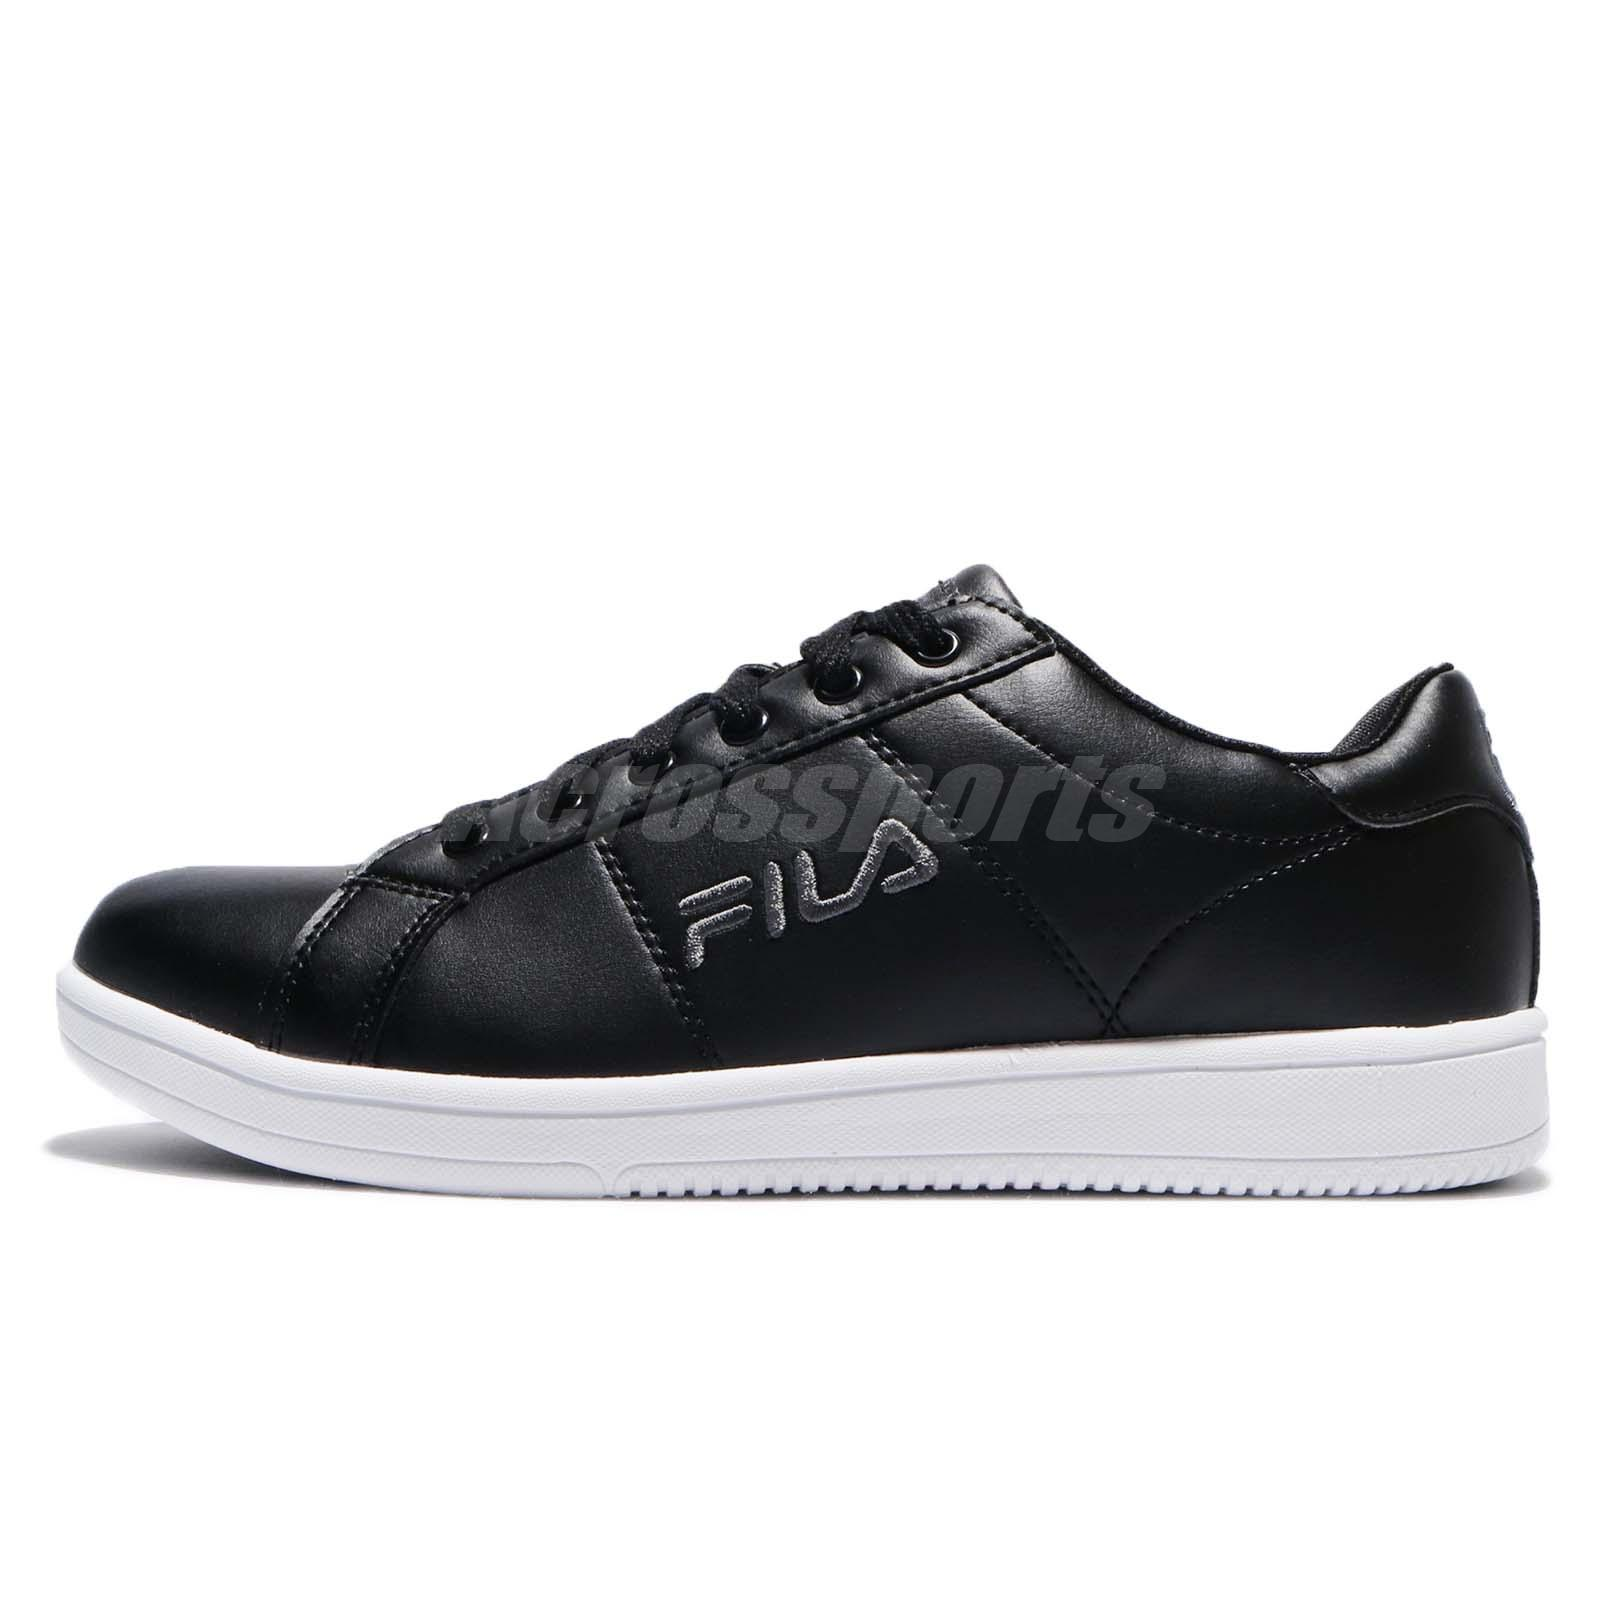 Fila C374R Heritage Footwear Black White Leather Men Casual Shoes Sneakers 7b0ccc3cc7e6